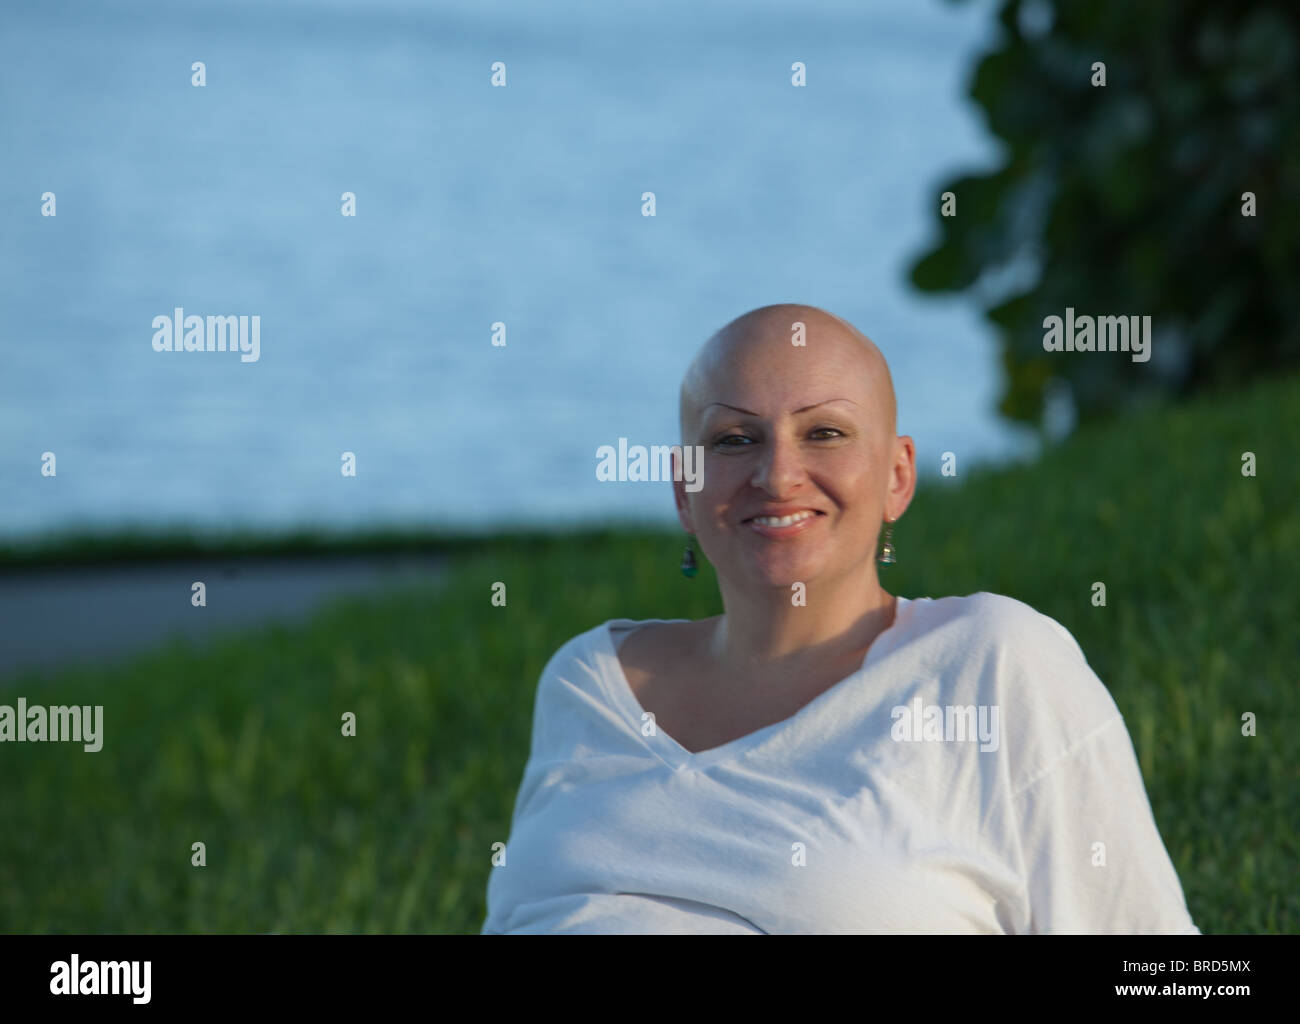 A cancer survivor smiles during an afternoon at the park - Stock Image